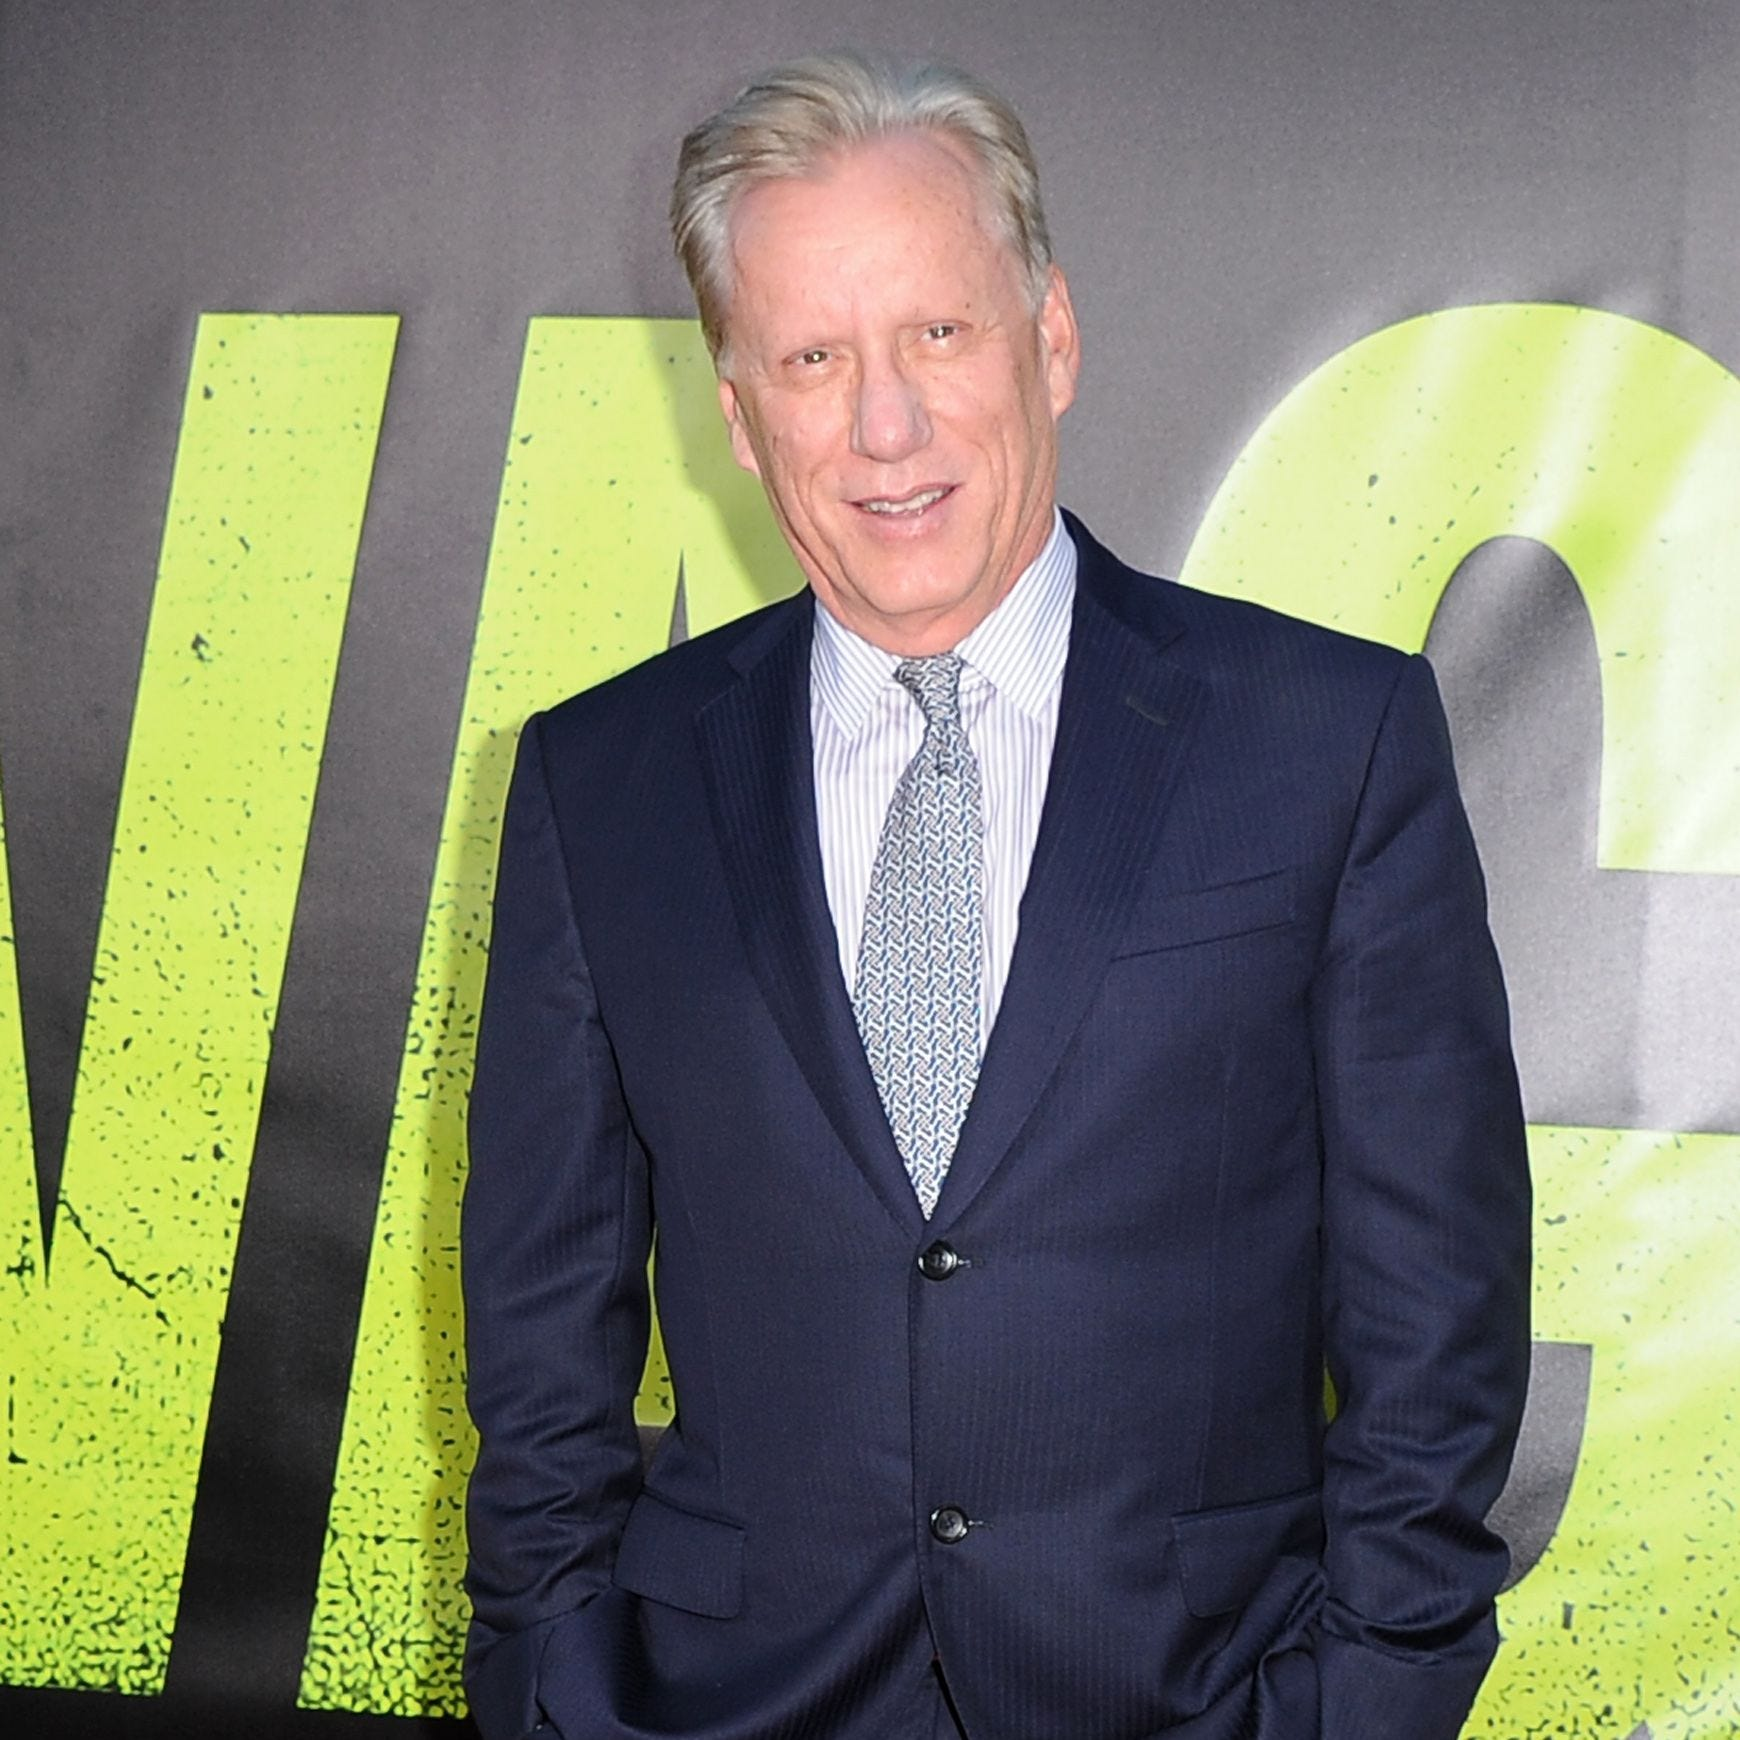 Actor James Woods fumes after Twitter locks him out: 'Free speech is free speech'